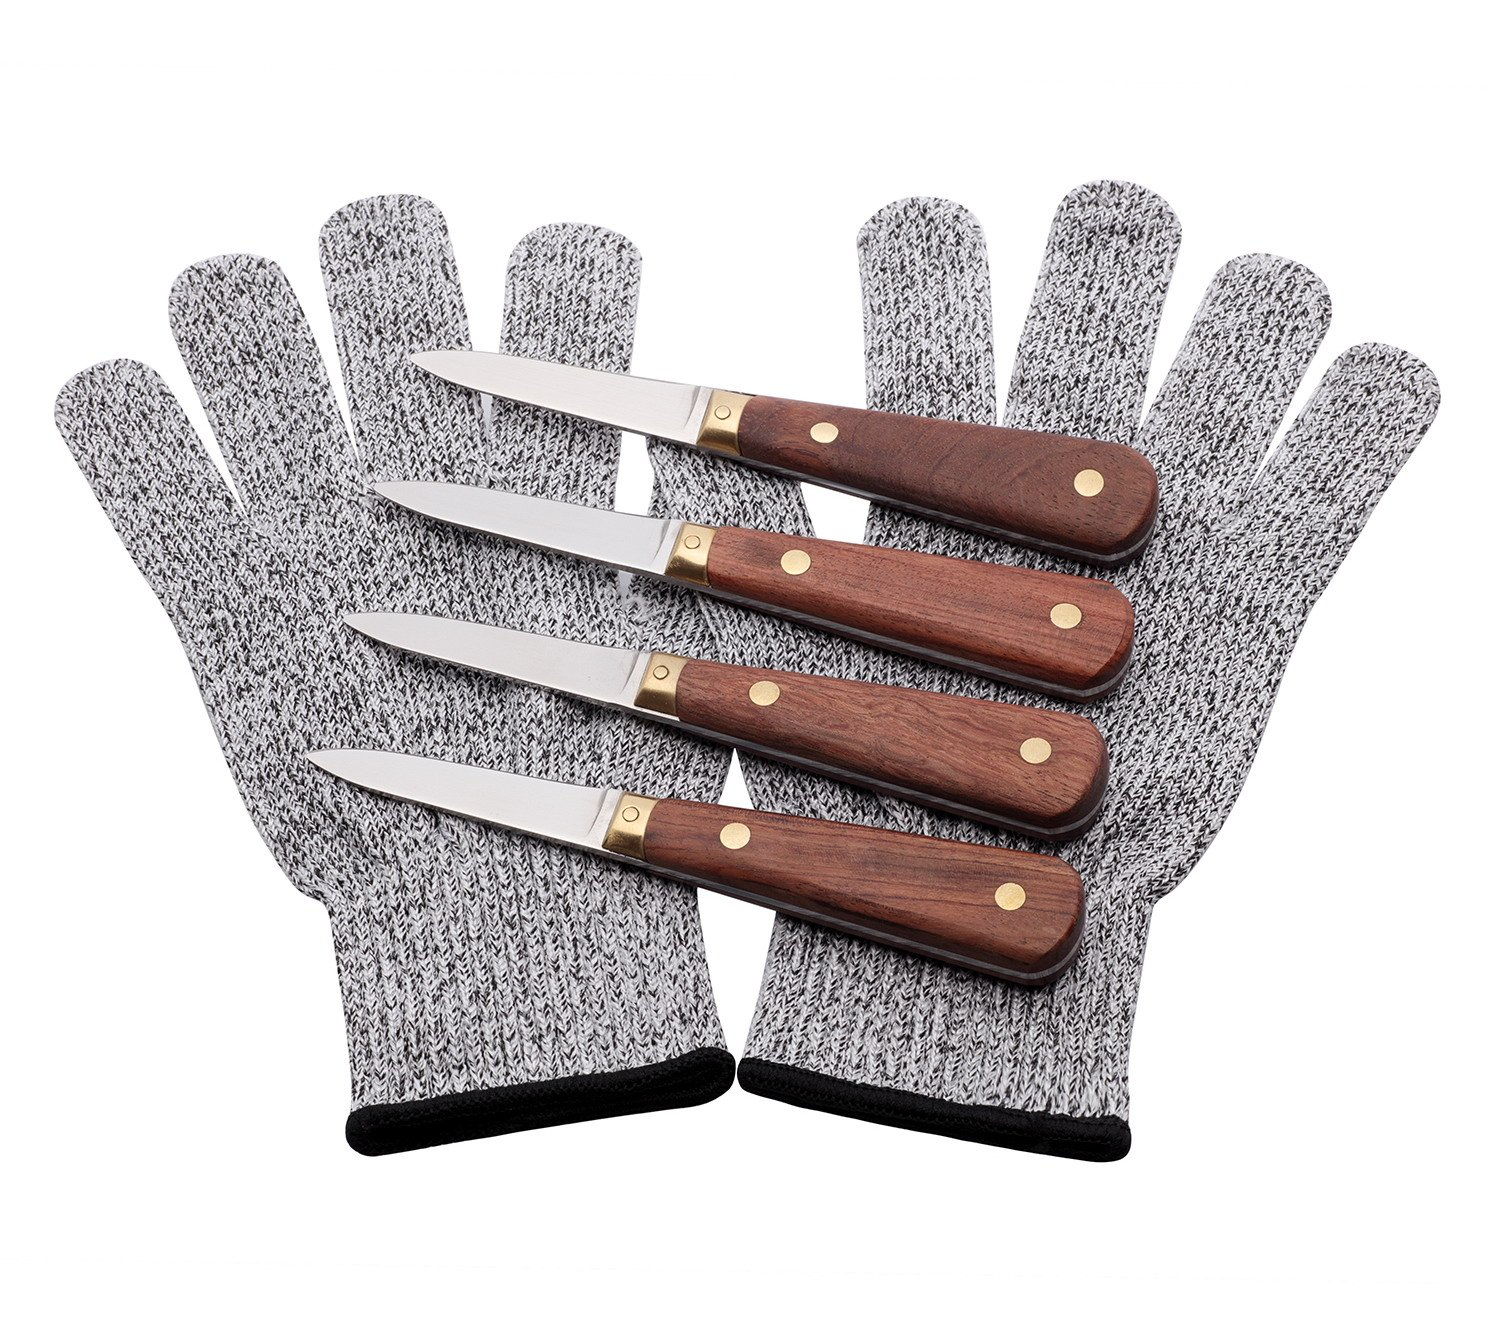 Oyster Knife Shucker Stainless Steel 4 pcs SET with Gloves